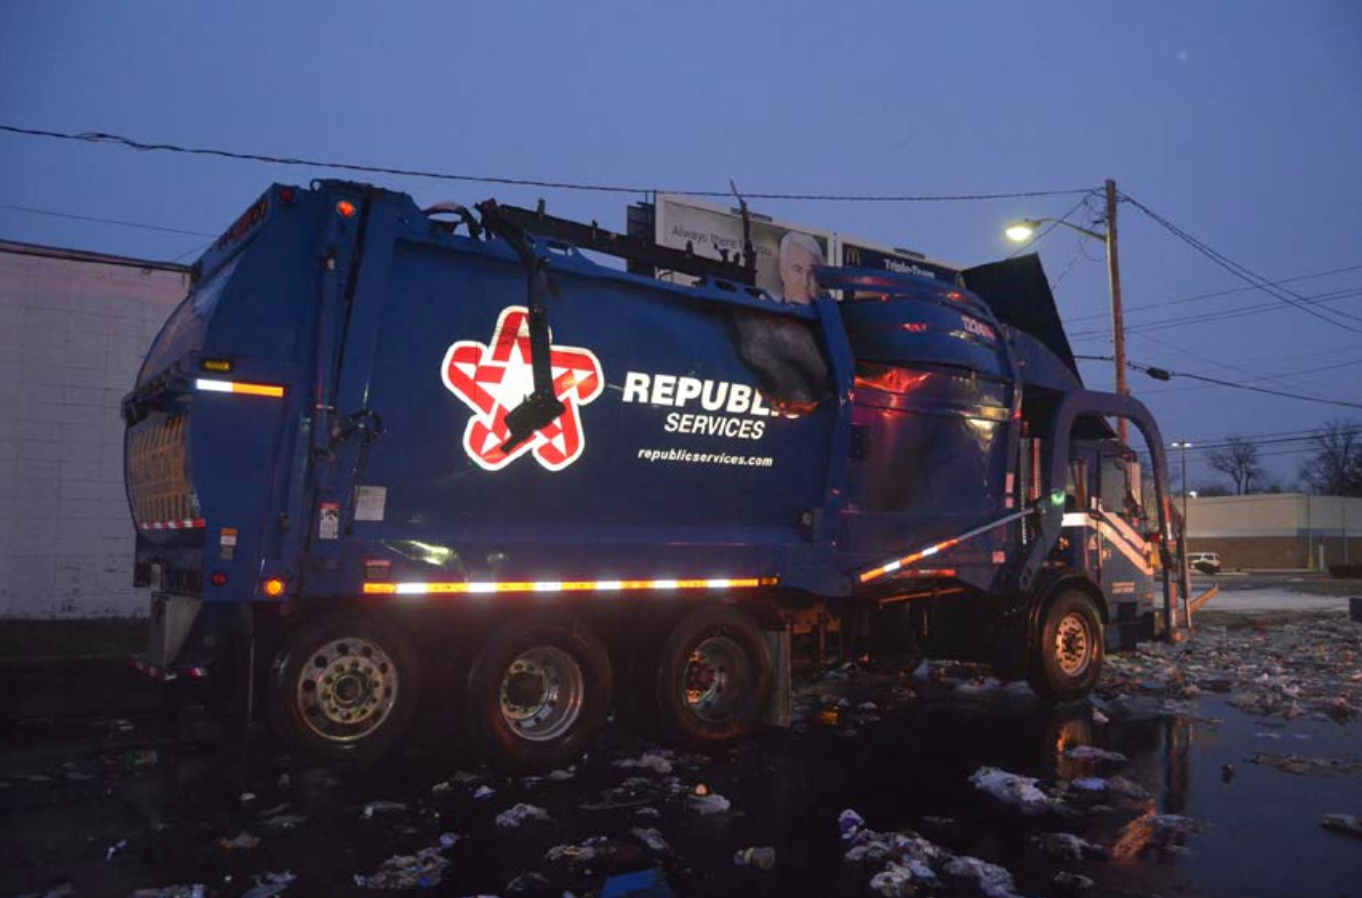 Picture of the exploded CN powered garbage truck in Indianapolis.